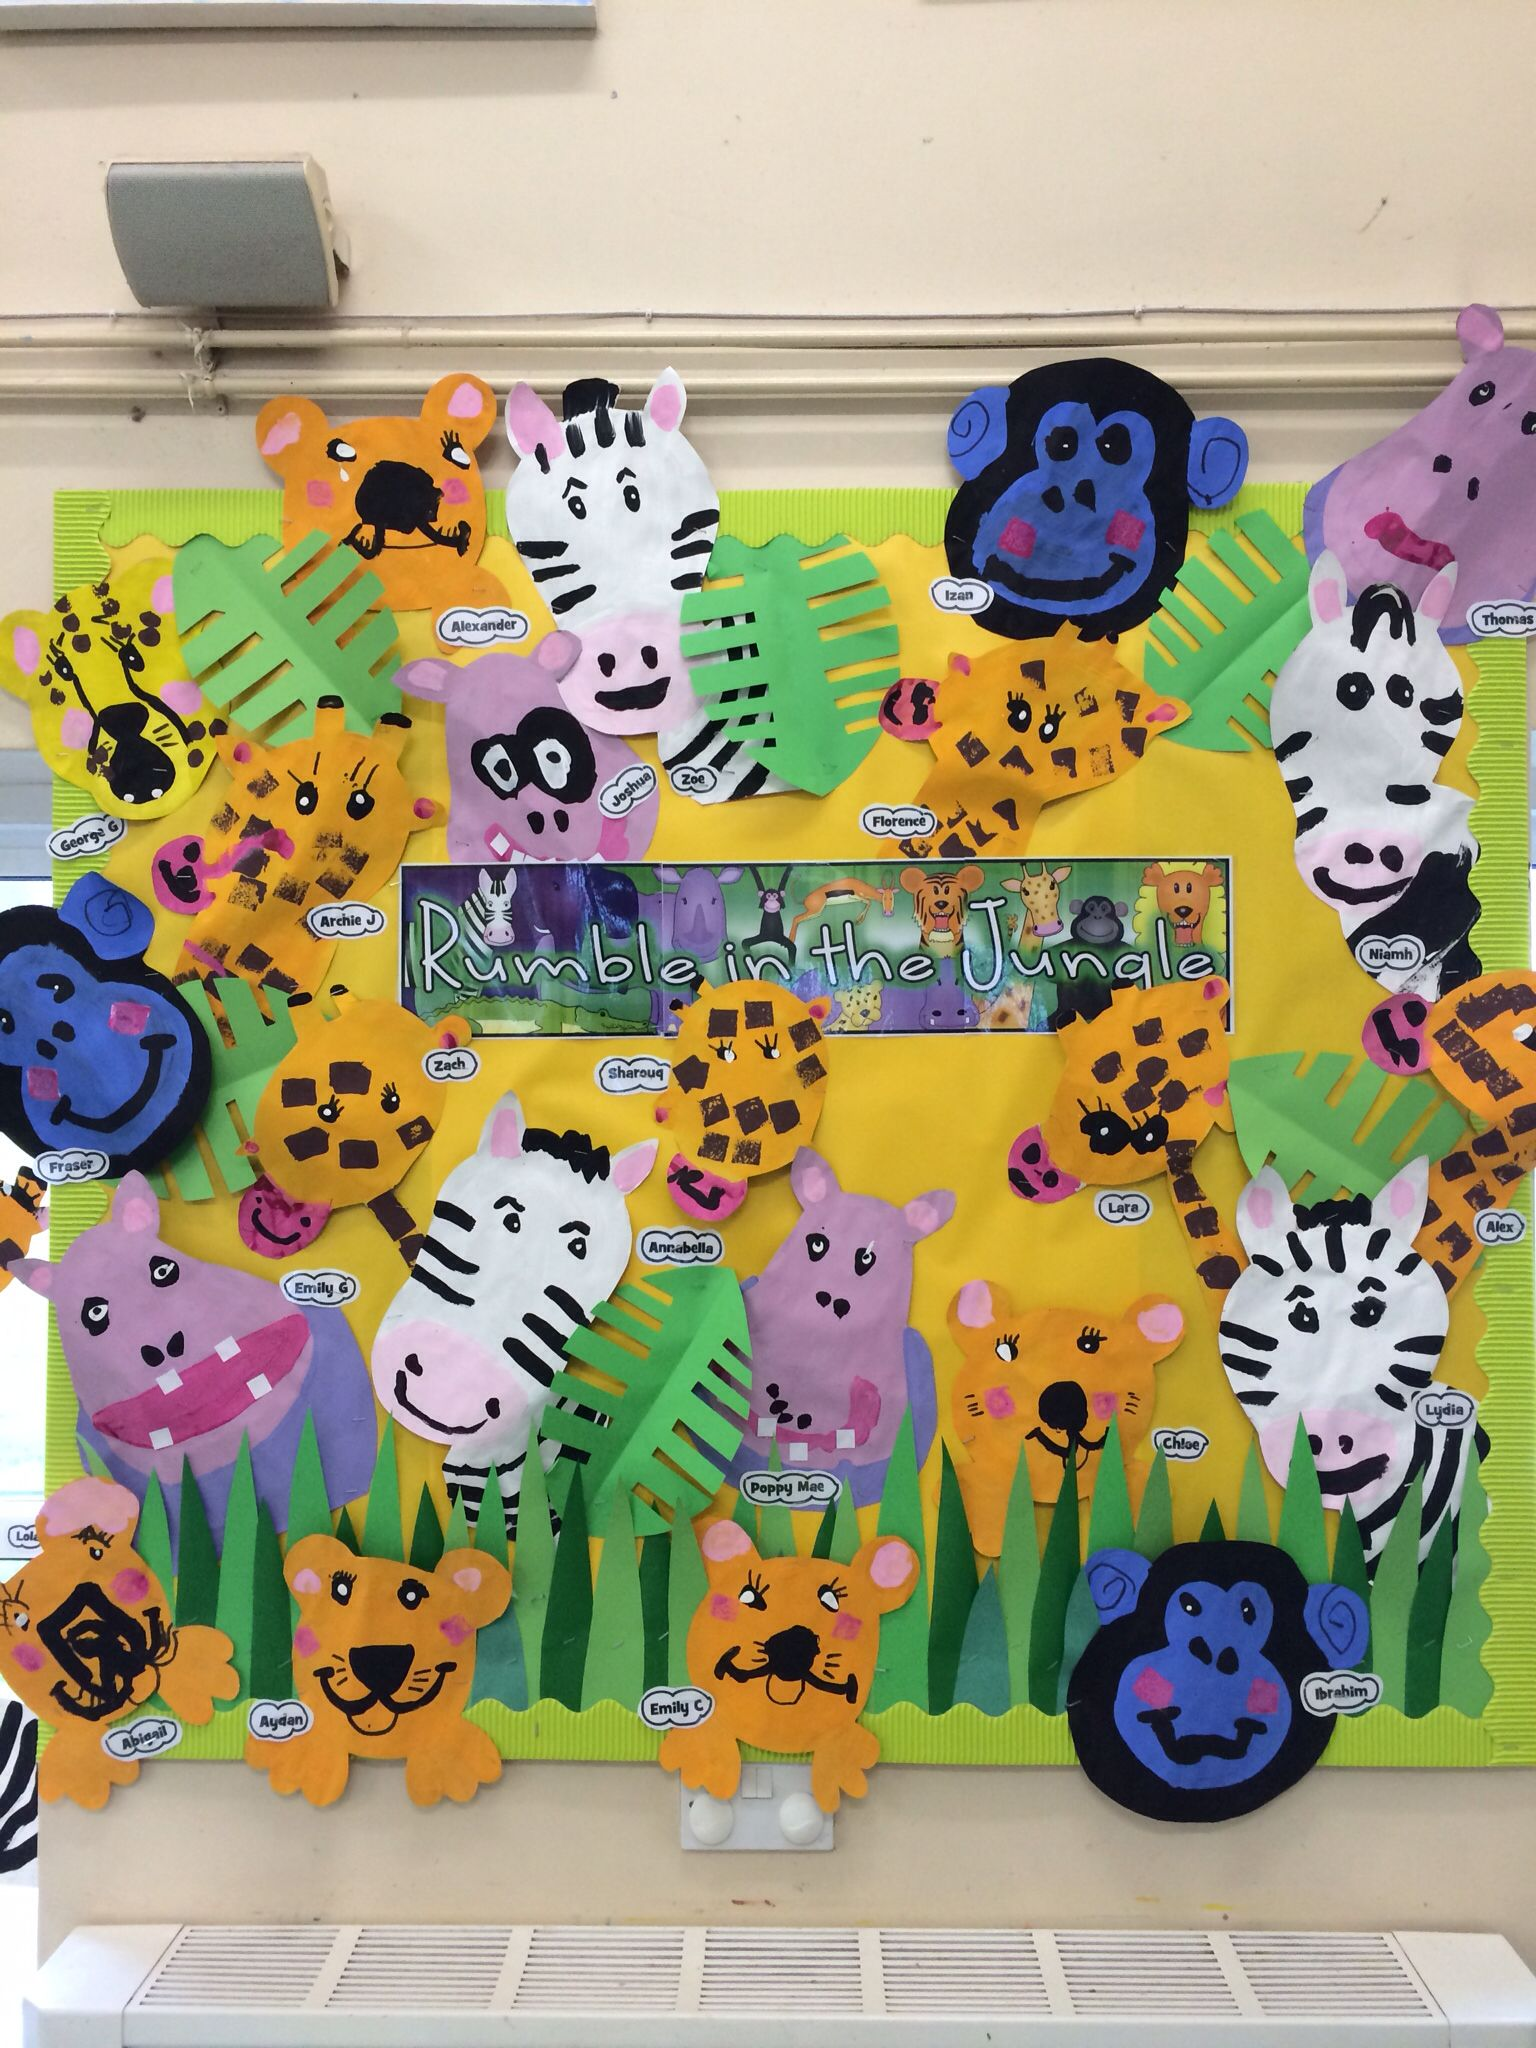 Giraffe And Gorilla Rumble In The Jungle Preschool Hall Work